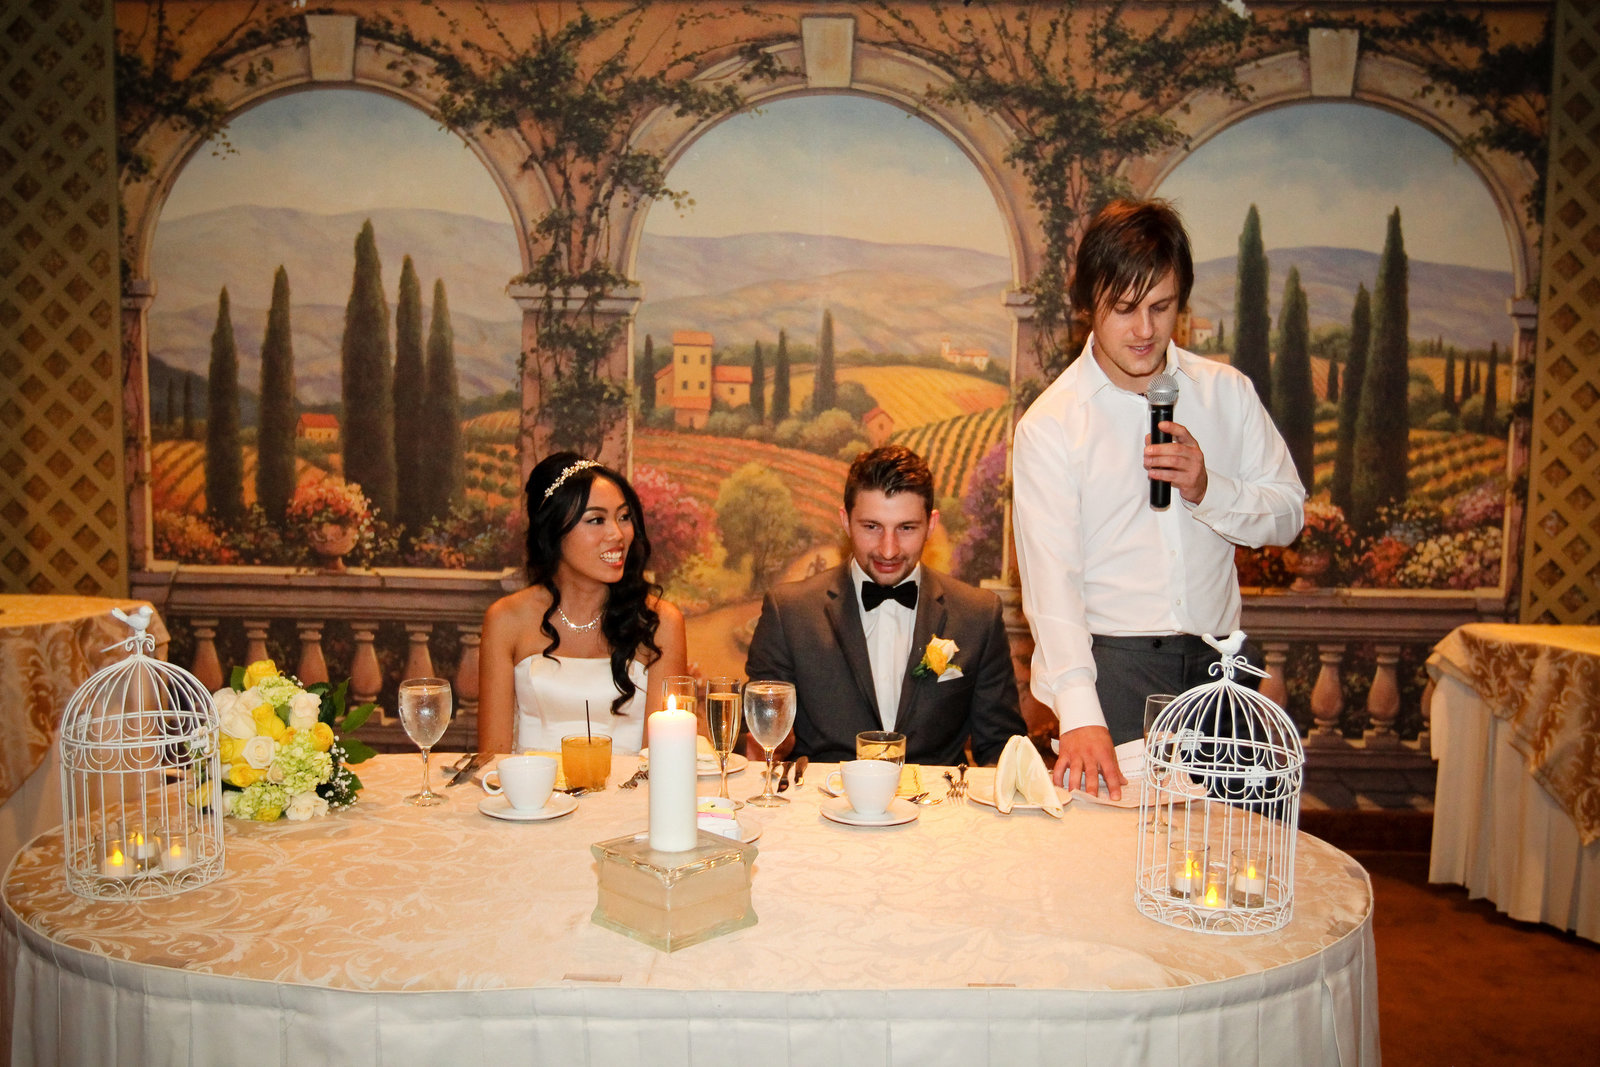 Ria-Mar-Restaurant-&-Bar-Wedding-Photos-0330